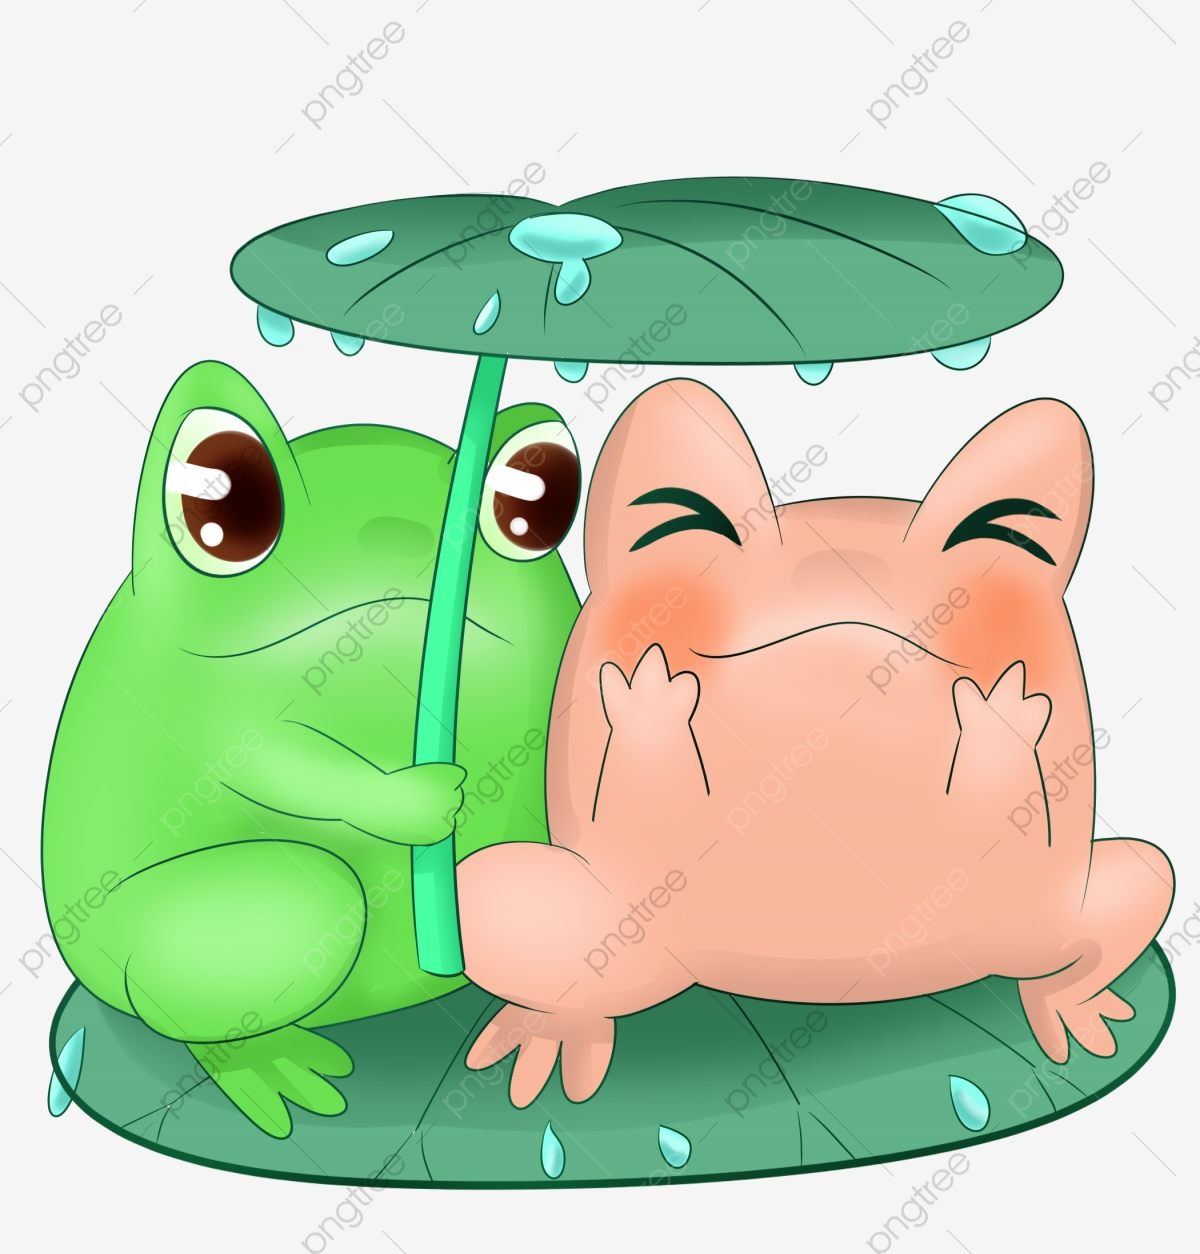 Cute Frog Cartoon Illustration Frog Cute Raining Png Transparent Clipart Image And Psd File For Free Download